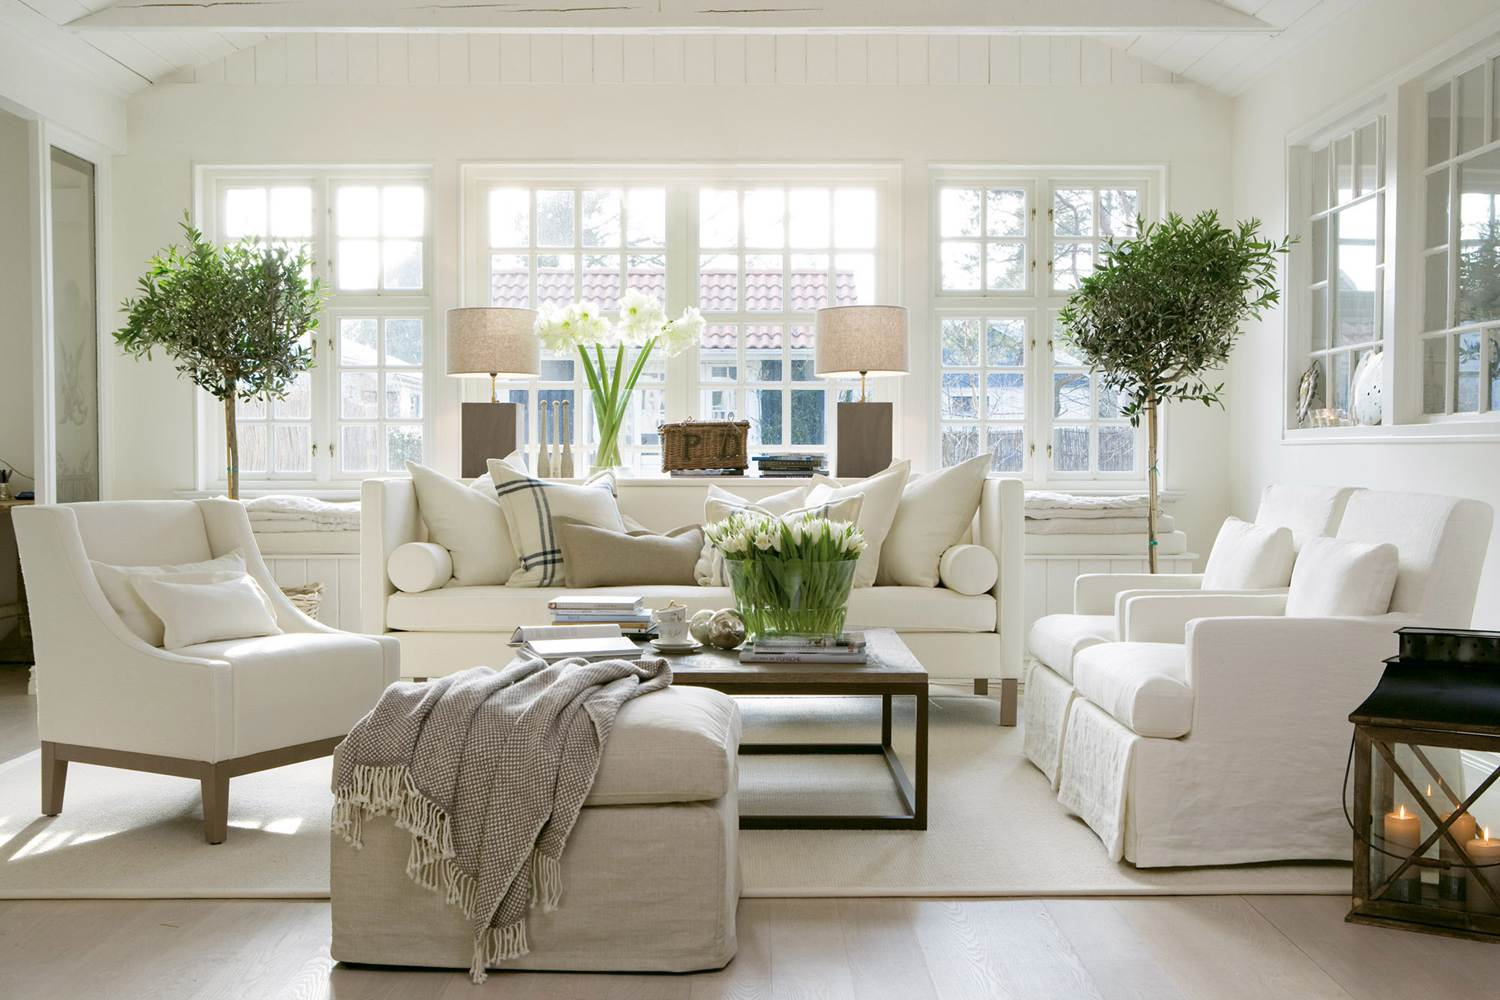 ood muted living room -